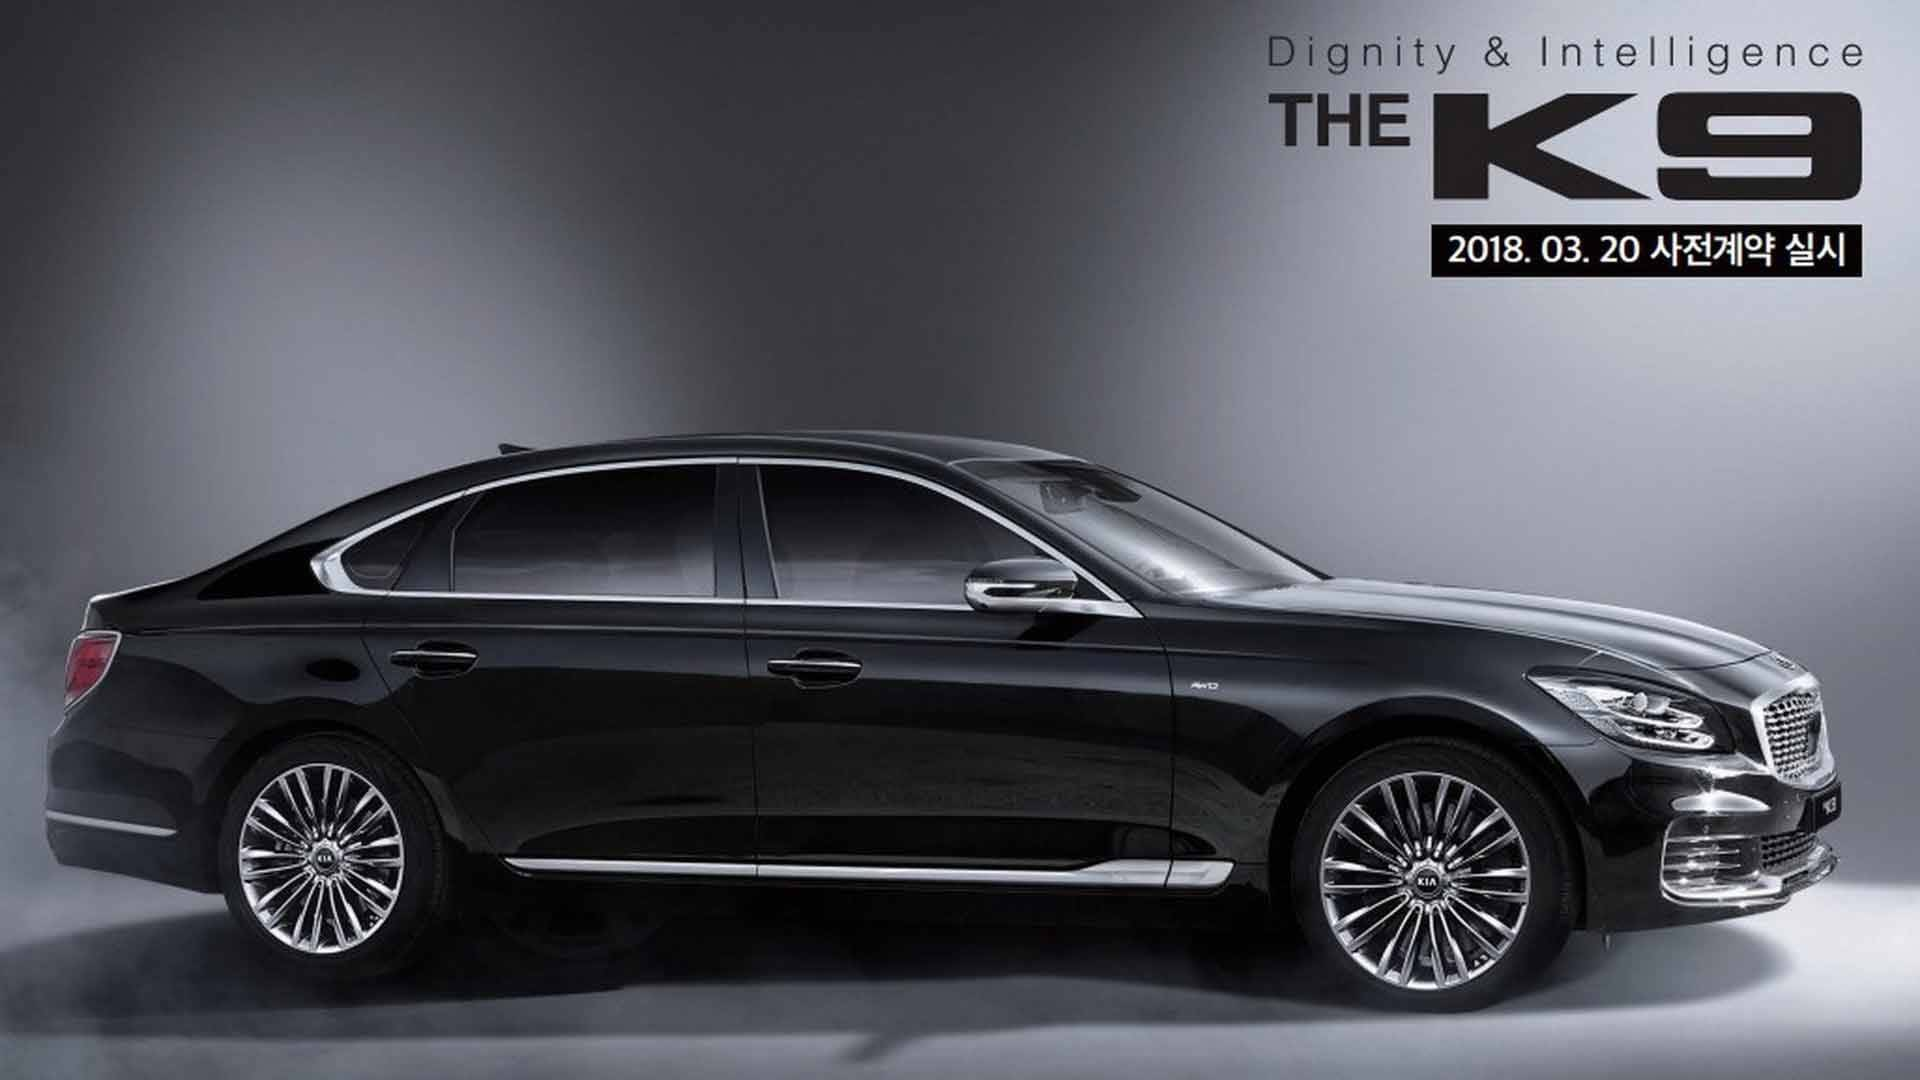 2019-kia-k900-k9-brochure-leaked-pricing-starts-at-krw-506-million-124391_1